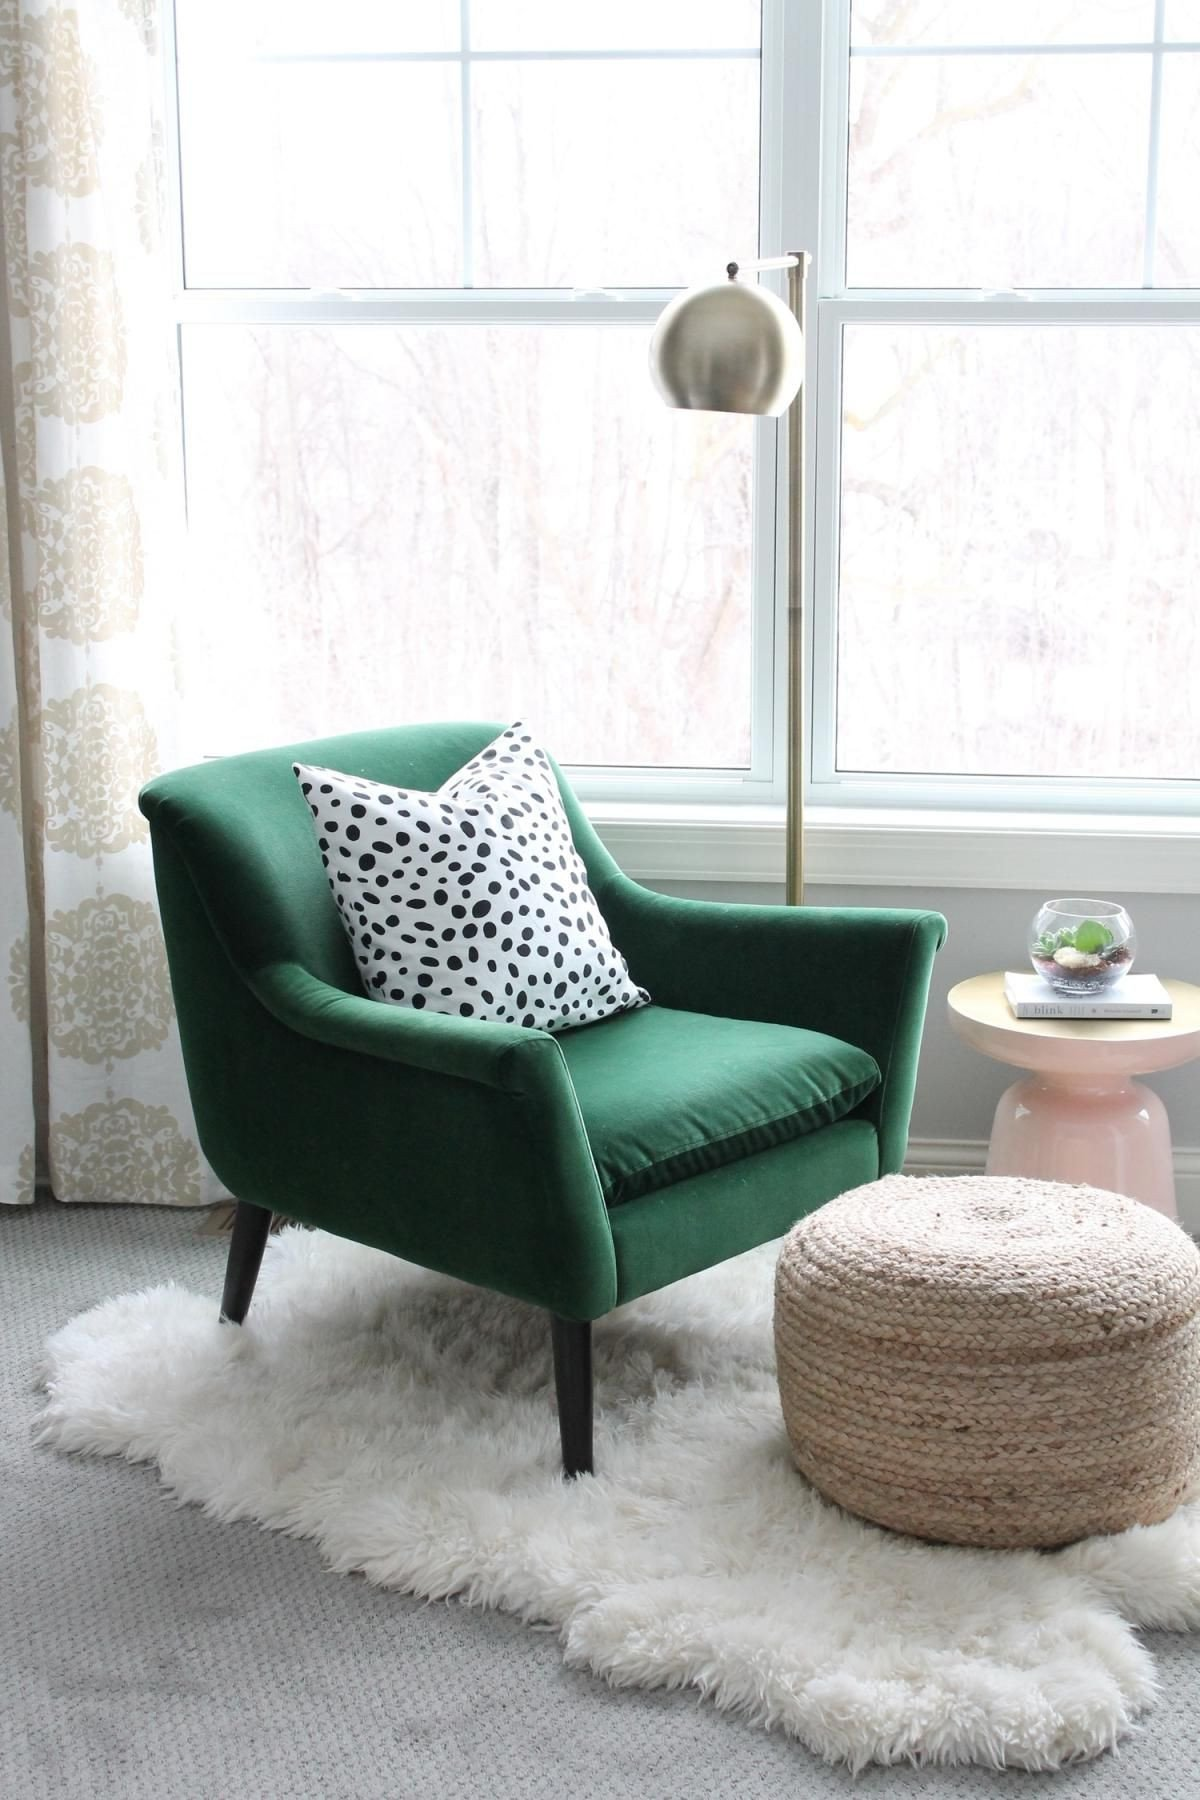 Reading Chair for Bedroom Fresh How to Decorate Your Bedroom Like An Adult Via Simply Grove